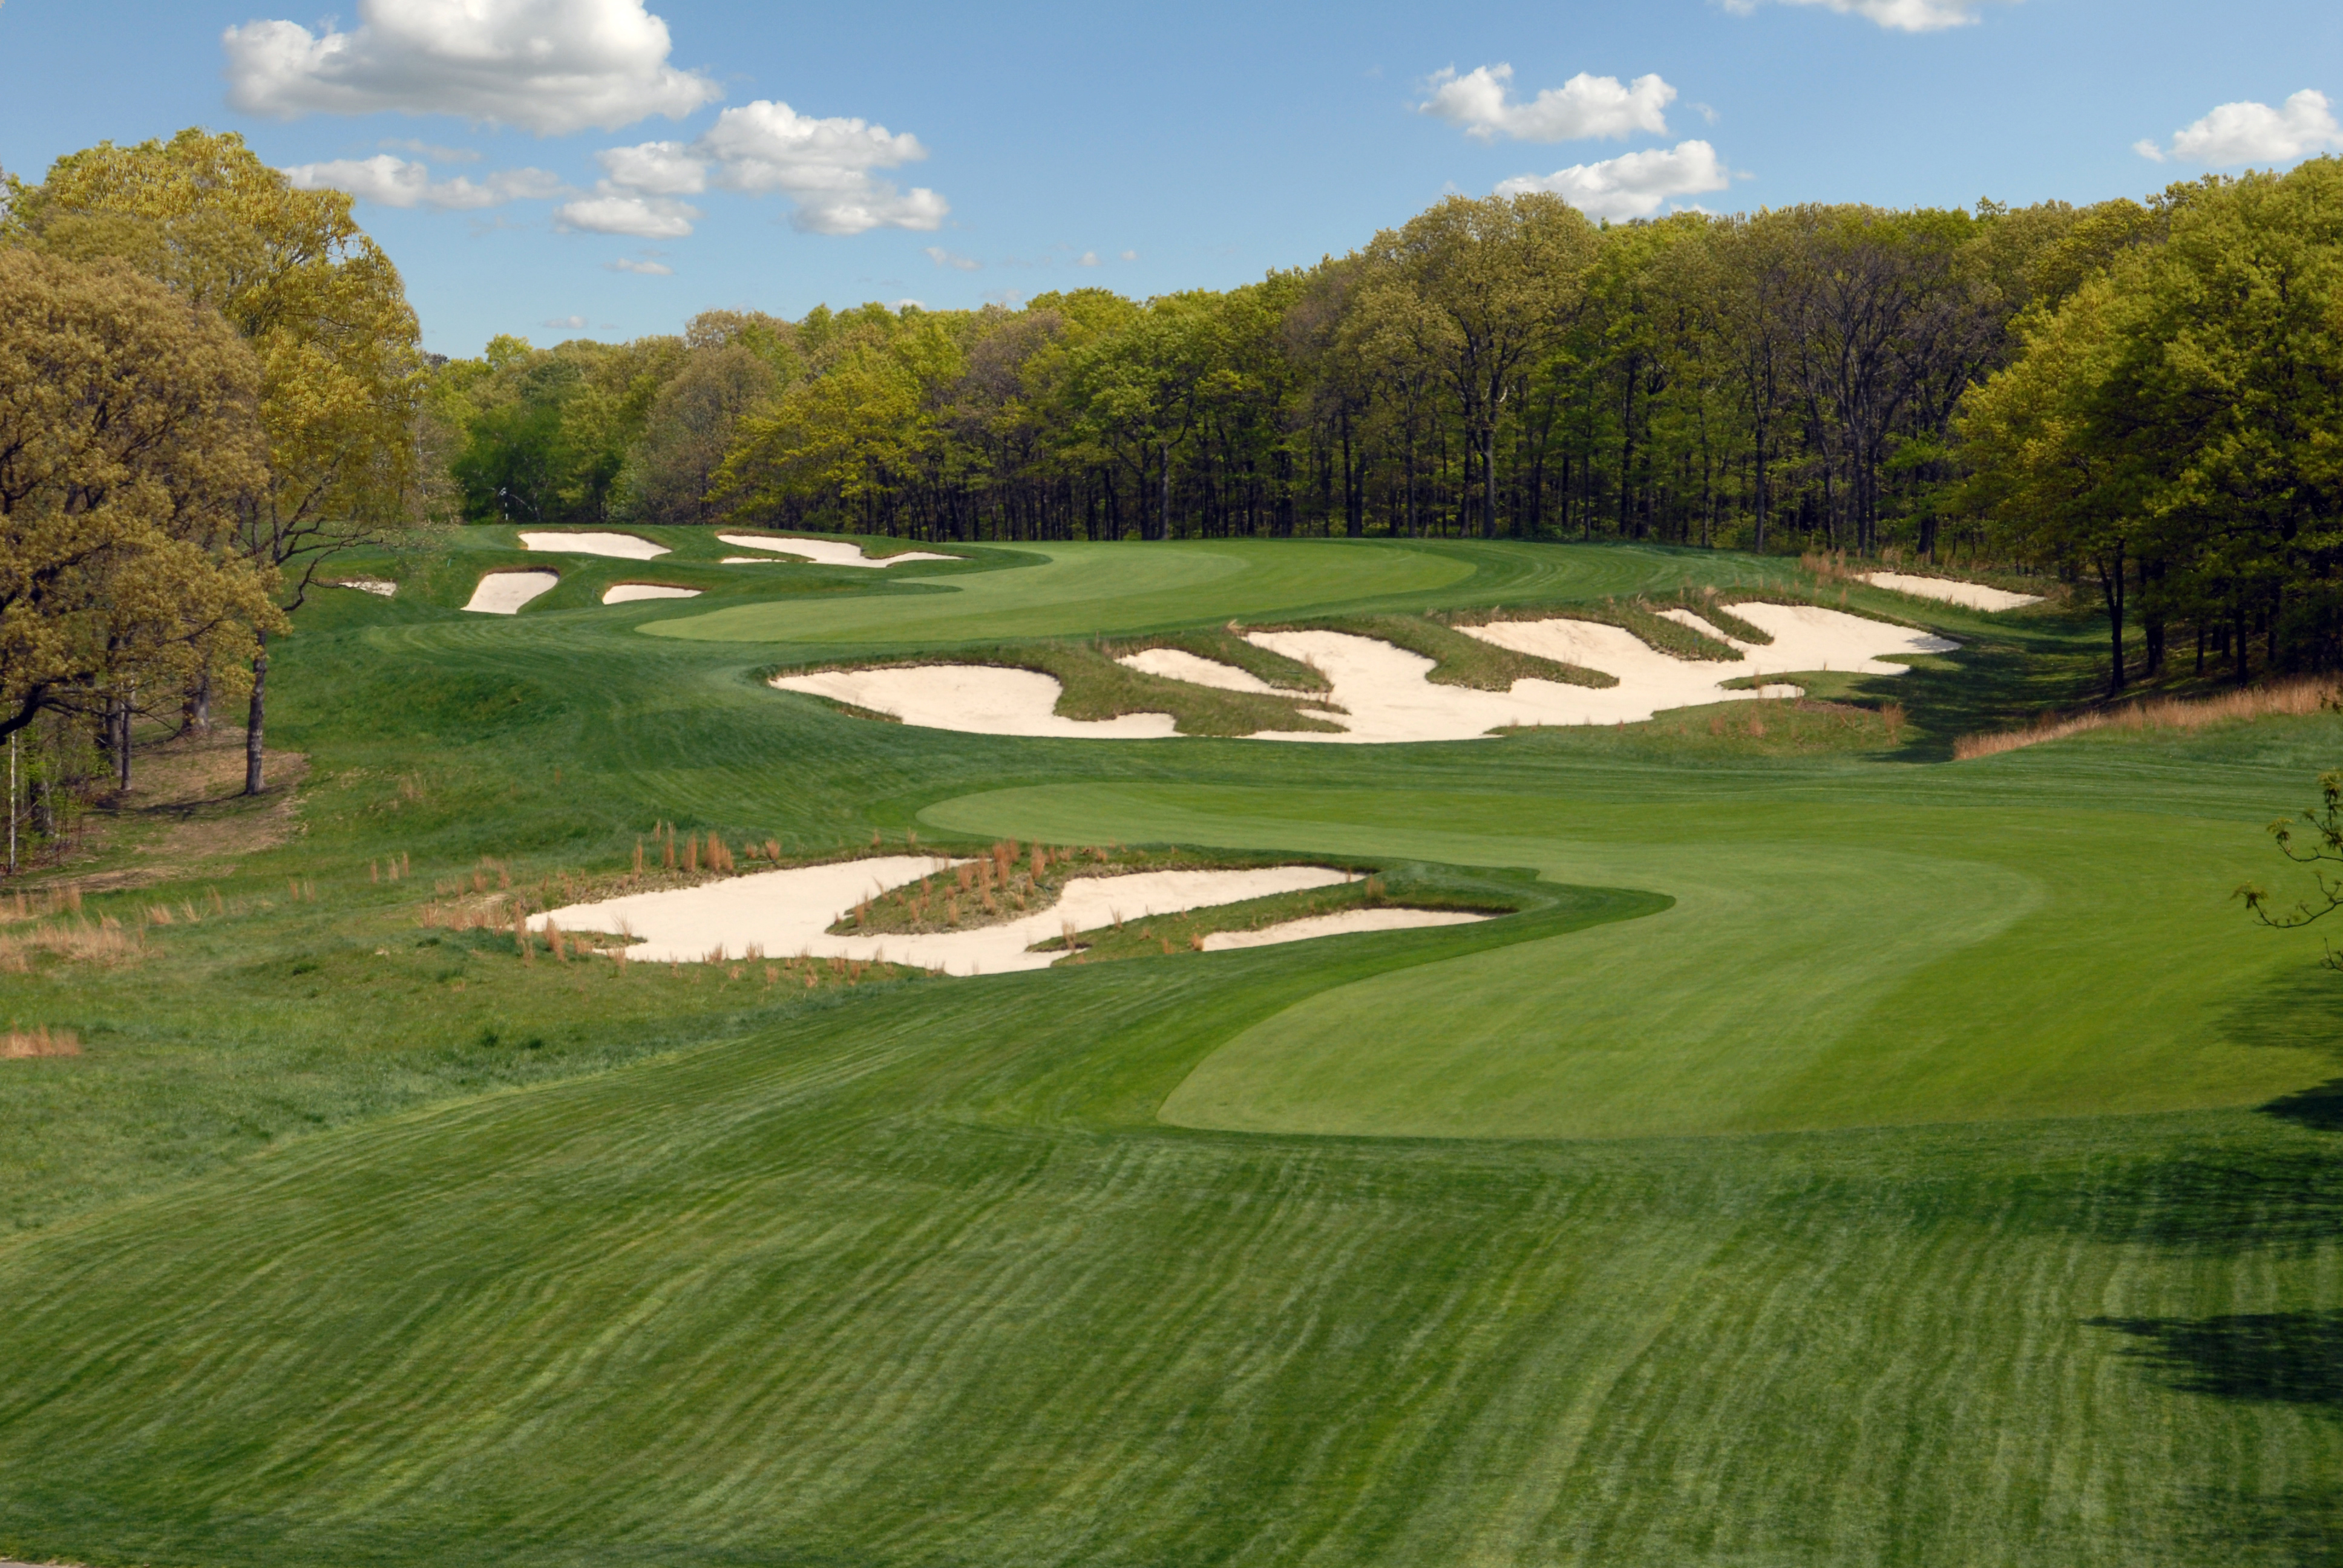 """One of golf's grand holes, the """"chain reaction"""" par-5 4th at Bethpage State Park's Black Course, site of the 2019 PGA Championship and the 2024 Ryder Cup Matches.  (New York State Dept of Parks)"""